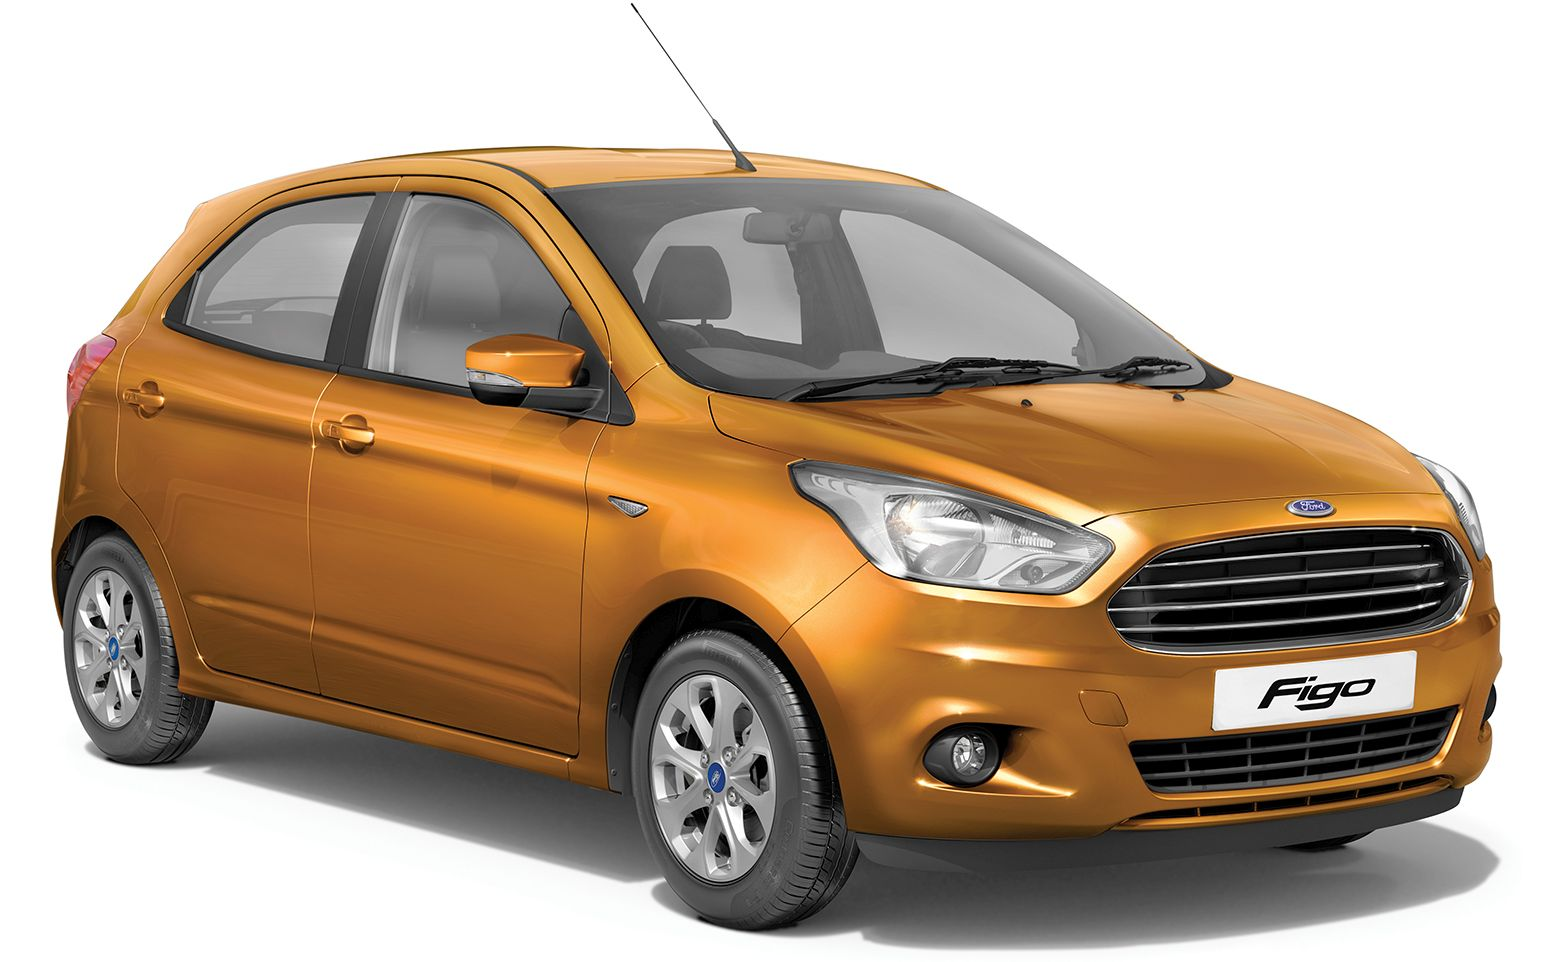 New Ford Figo Launched In India Price Starts At ₹ 4 29 Lakh